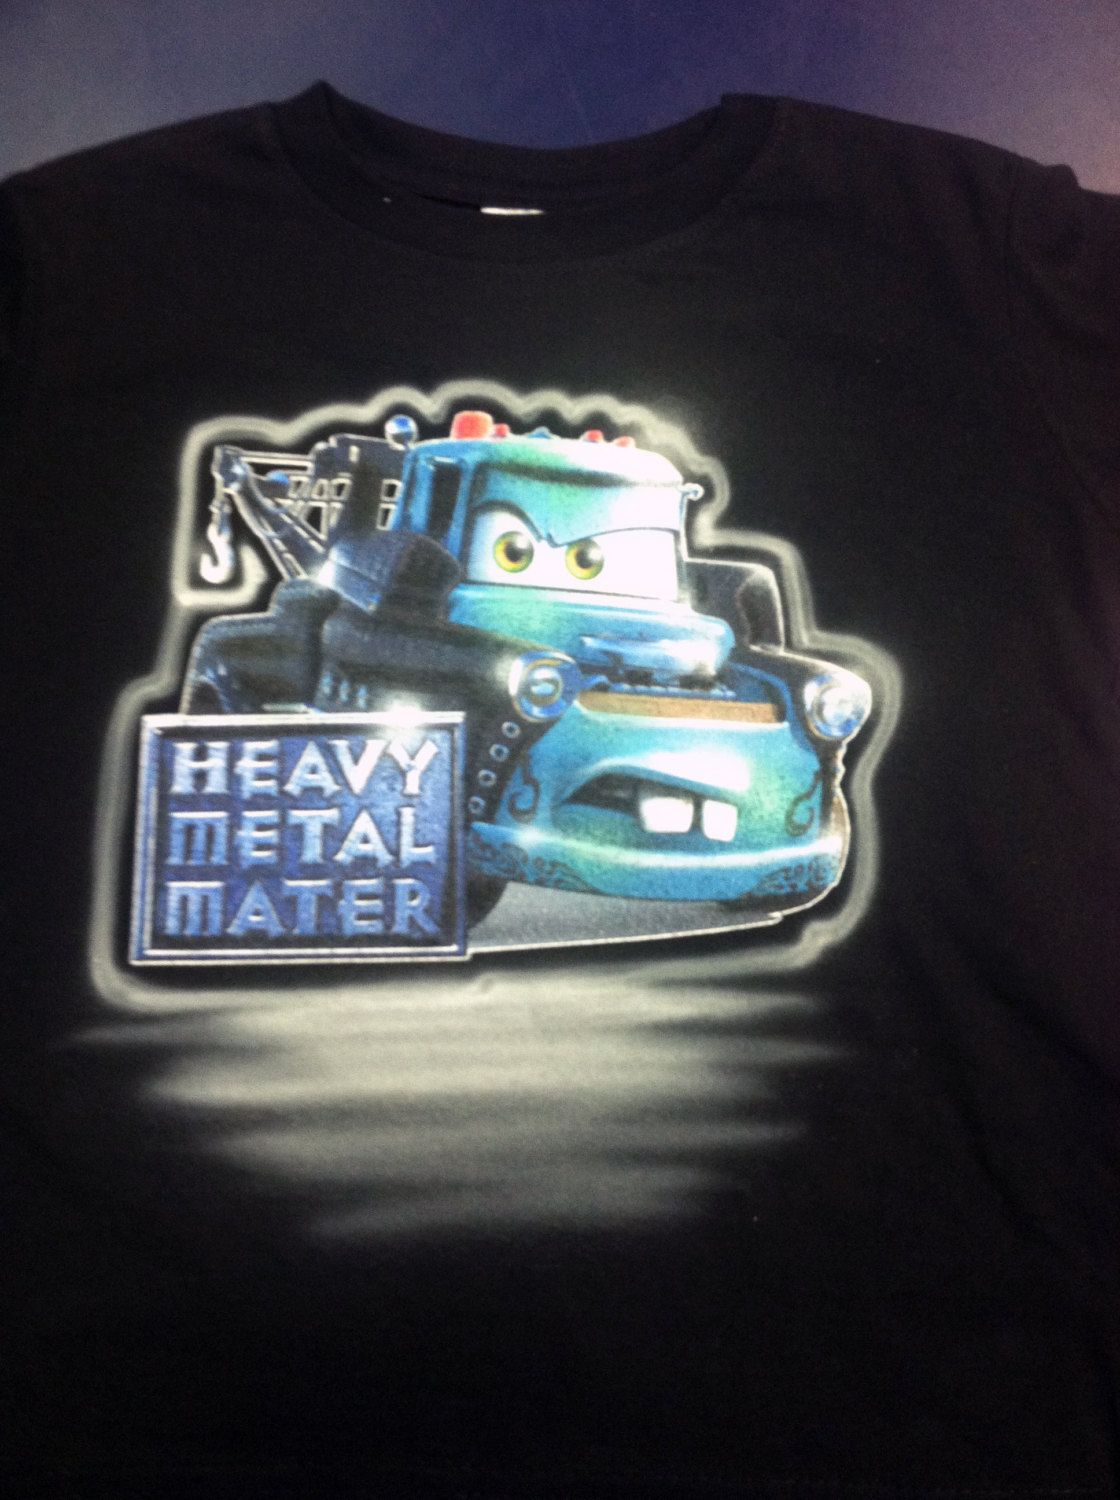 Custom Airbrushed Heavy Metal Tow Mater Shirt by